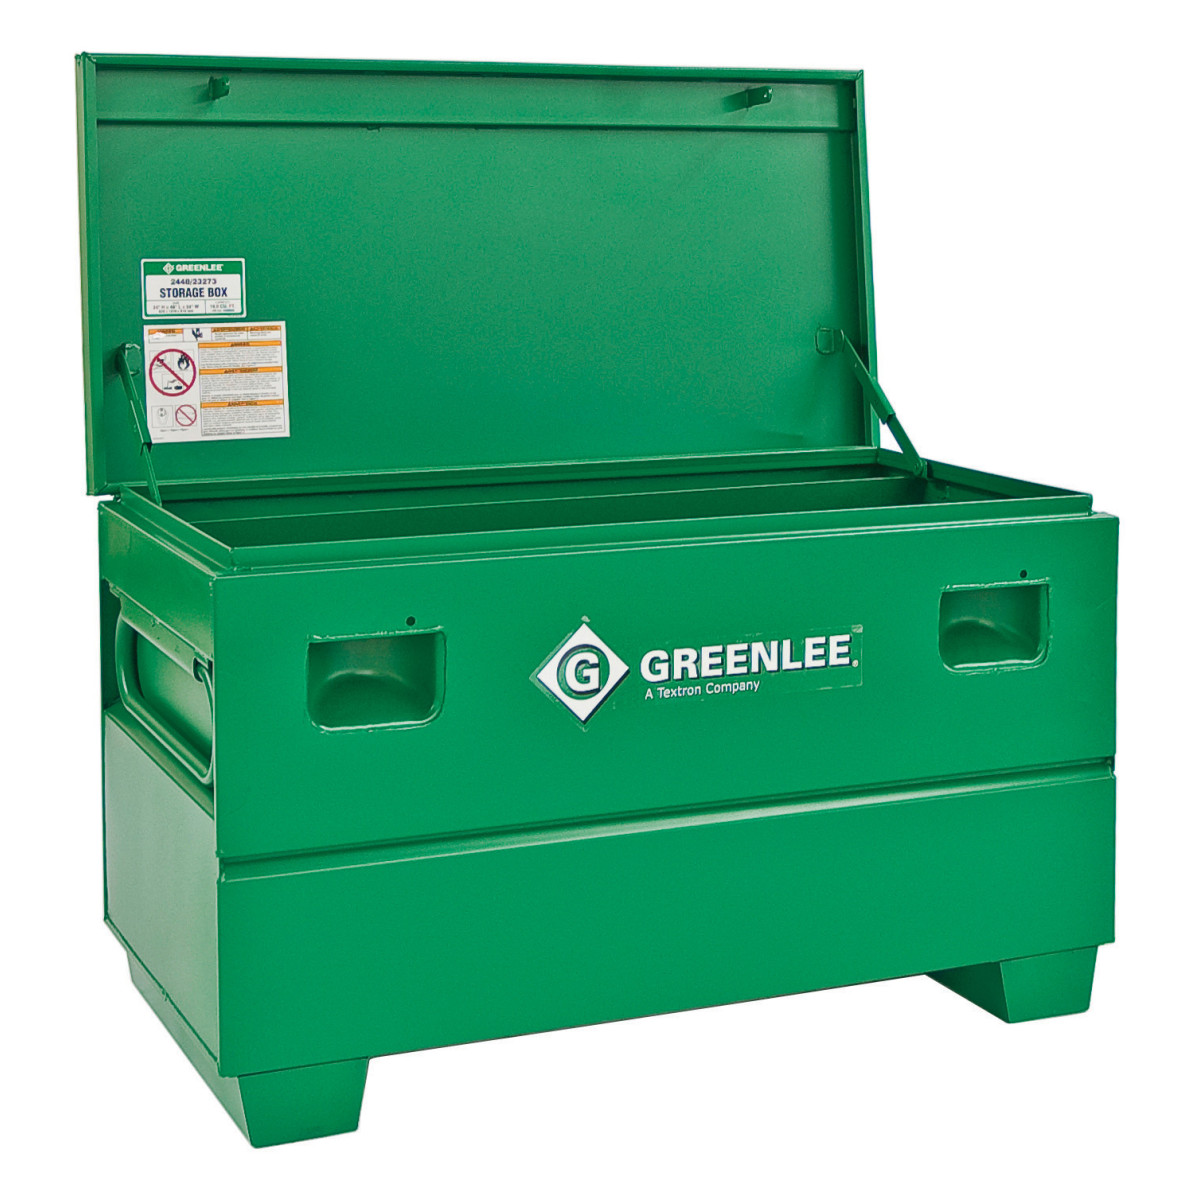 Greenlee 2448X Chest Assembly (2448X)